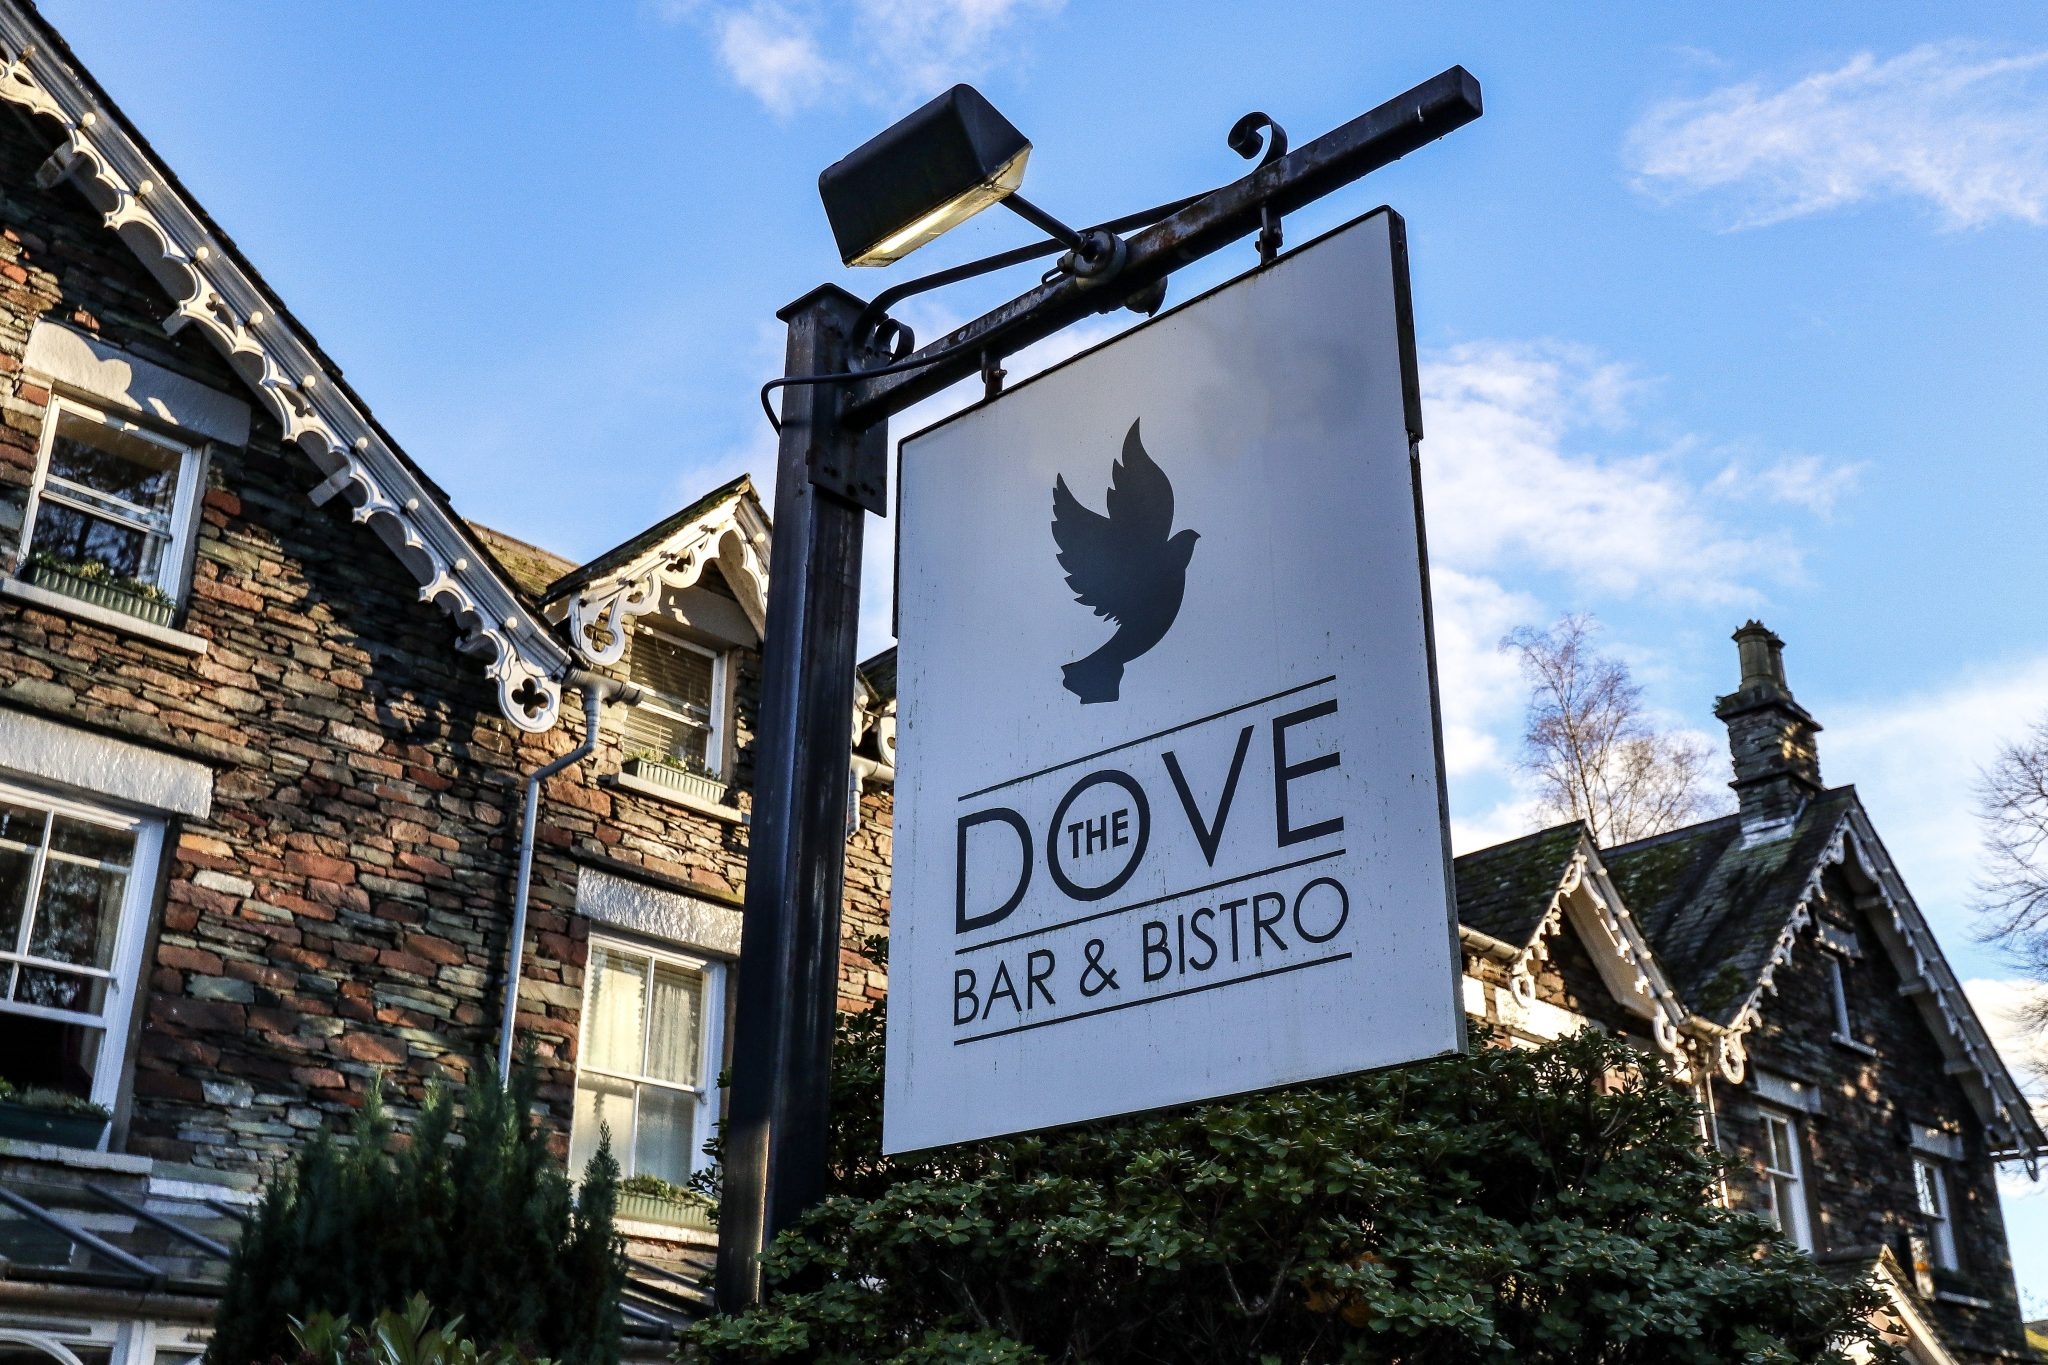 The Dove Bistro at The Wordsworth Hotel & Spa, Grasmere, The Lake District